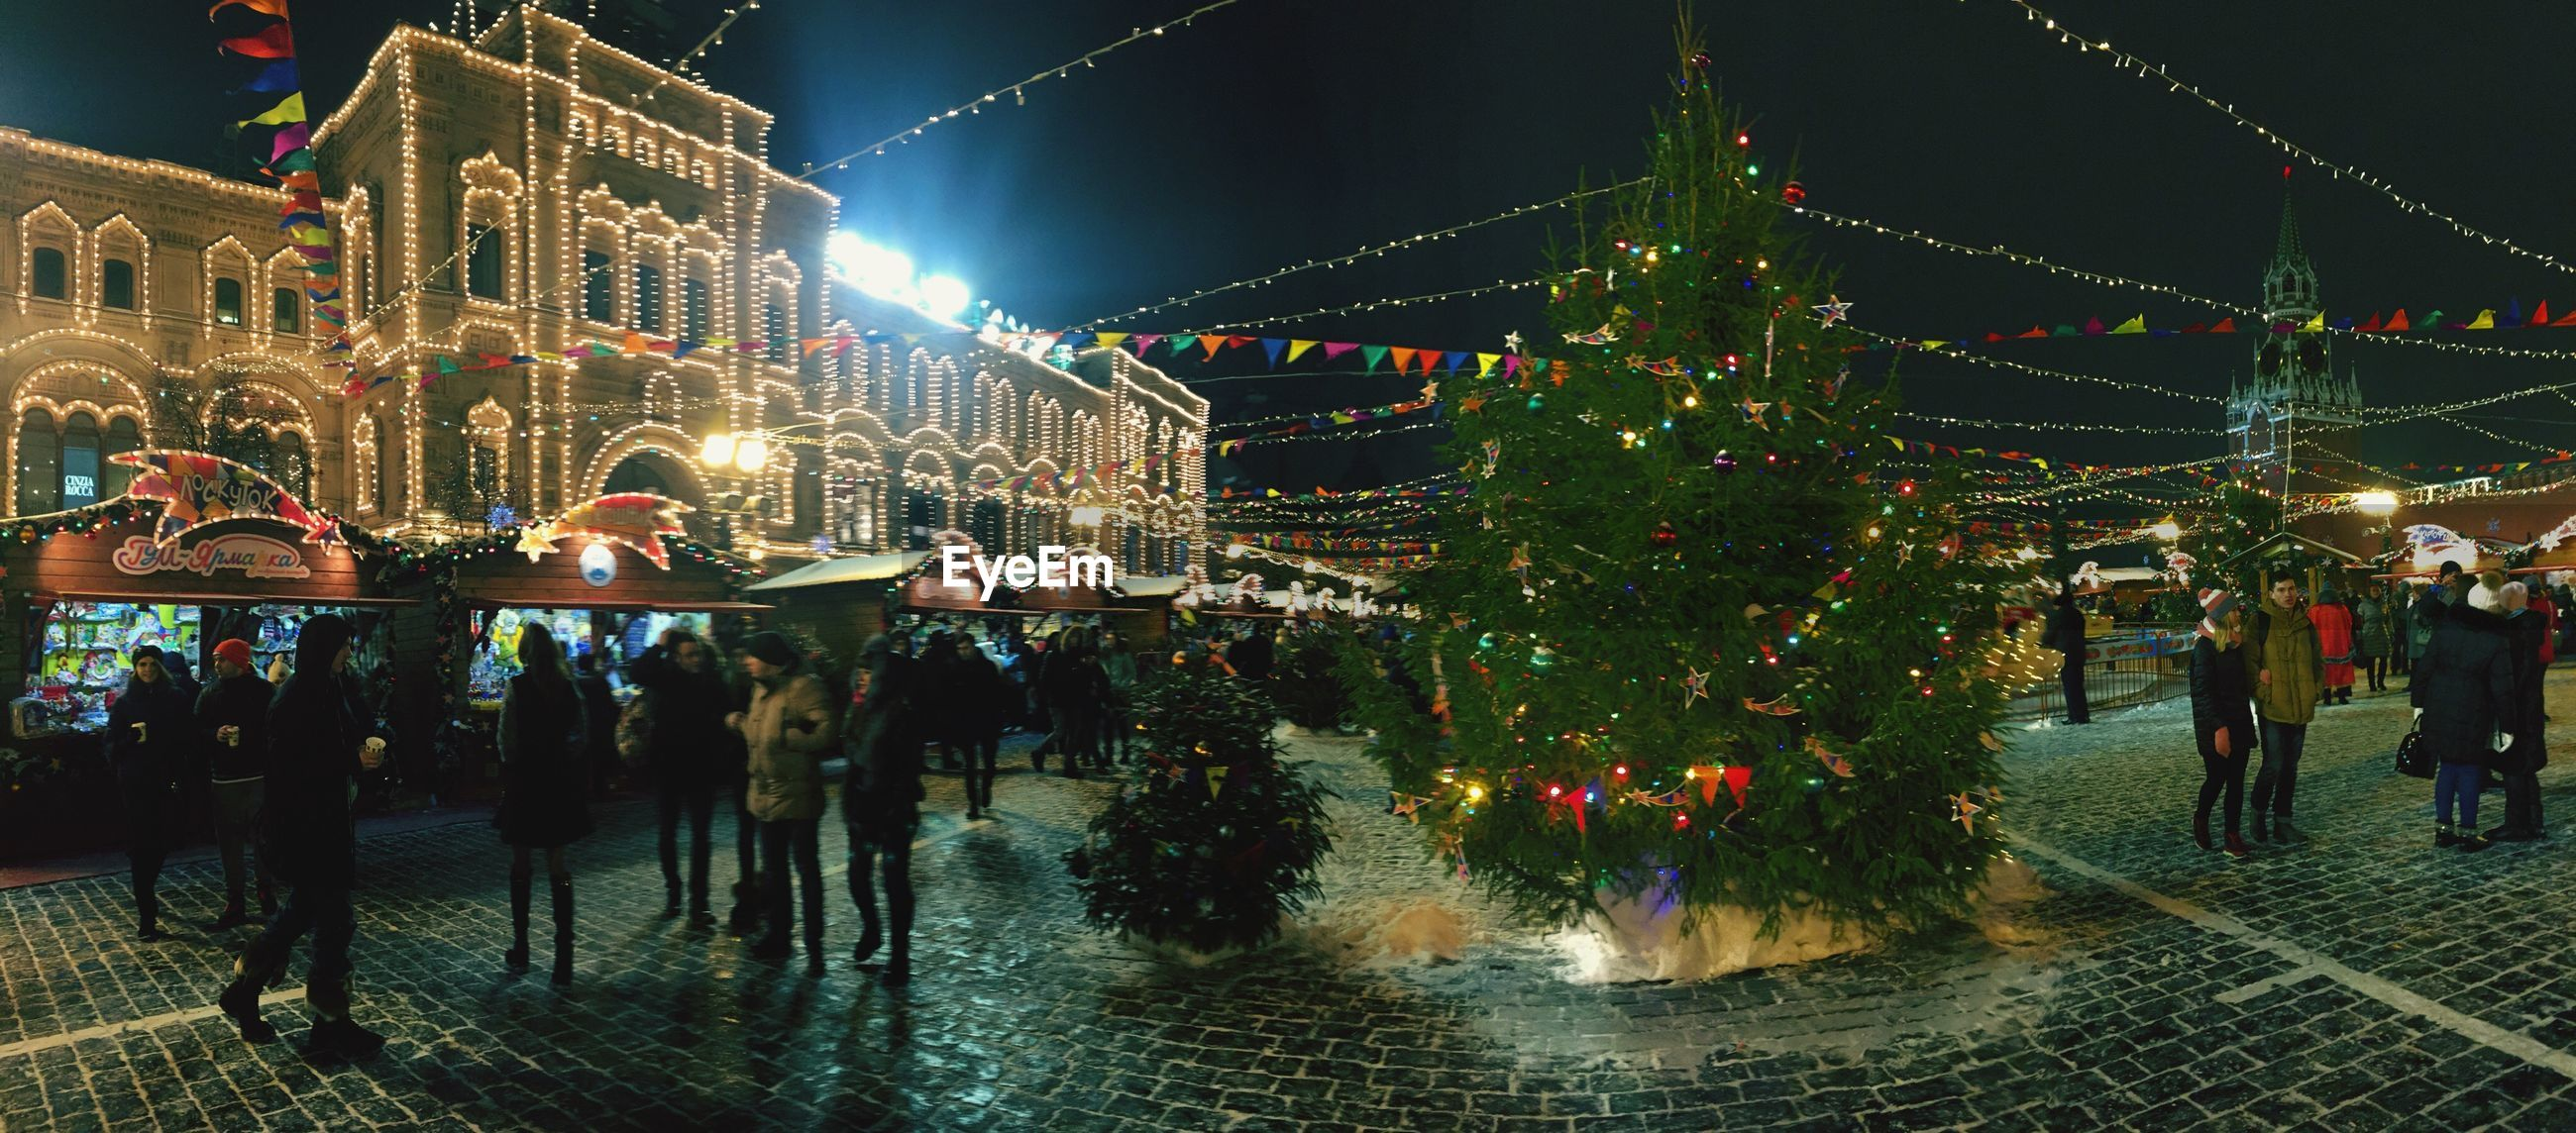 illuminated, night, celebration, hanging, multi colored, christmas lights, christmas decoration, christmas, outdoors, holiday - event, large group of people, tree, sky, city, people, christmas market, architecture